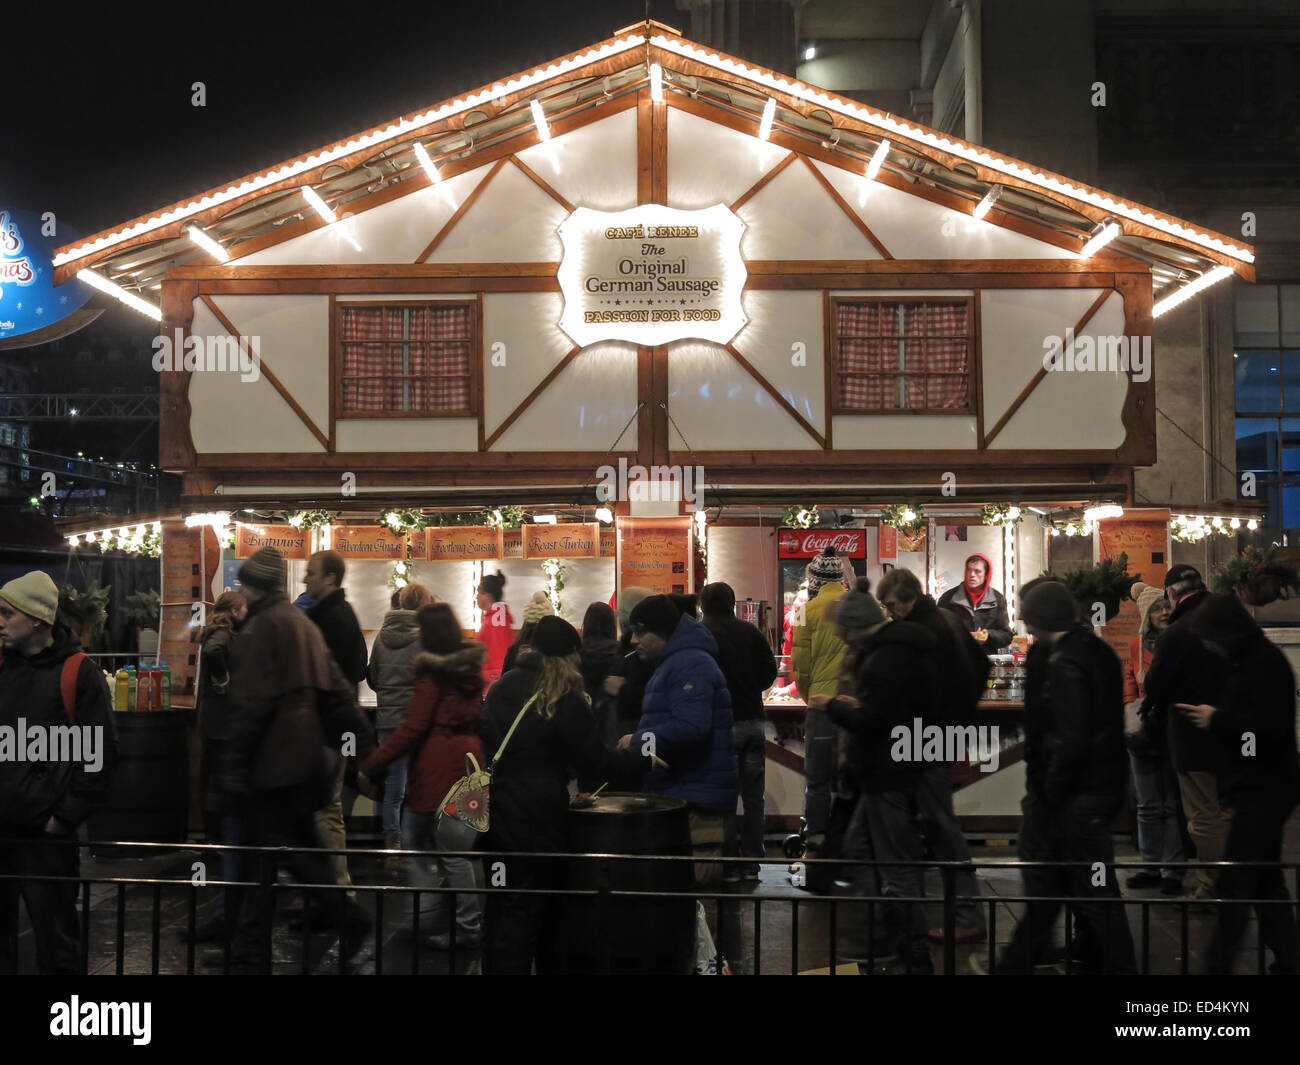 Edinburgh Xmas,Cafe Renee,German Sausage House Stock Photo